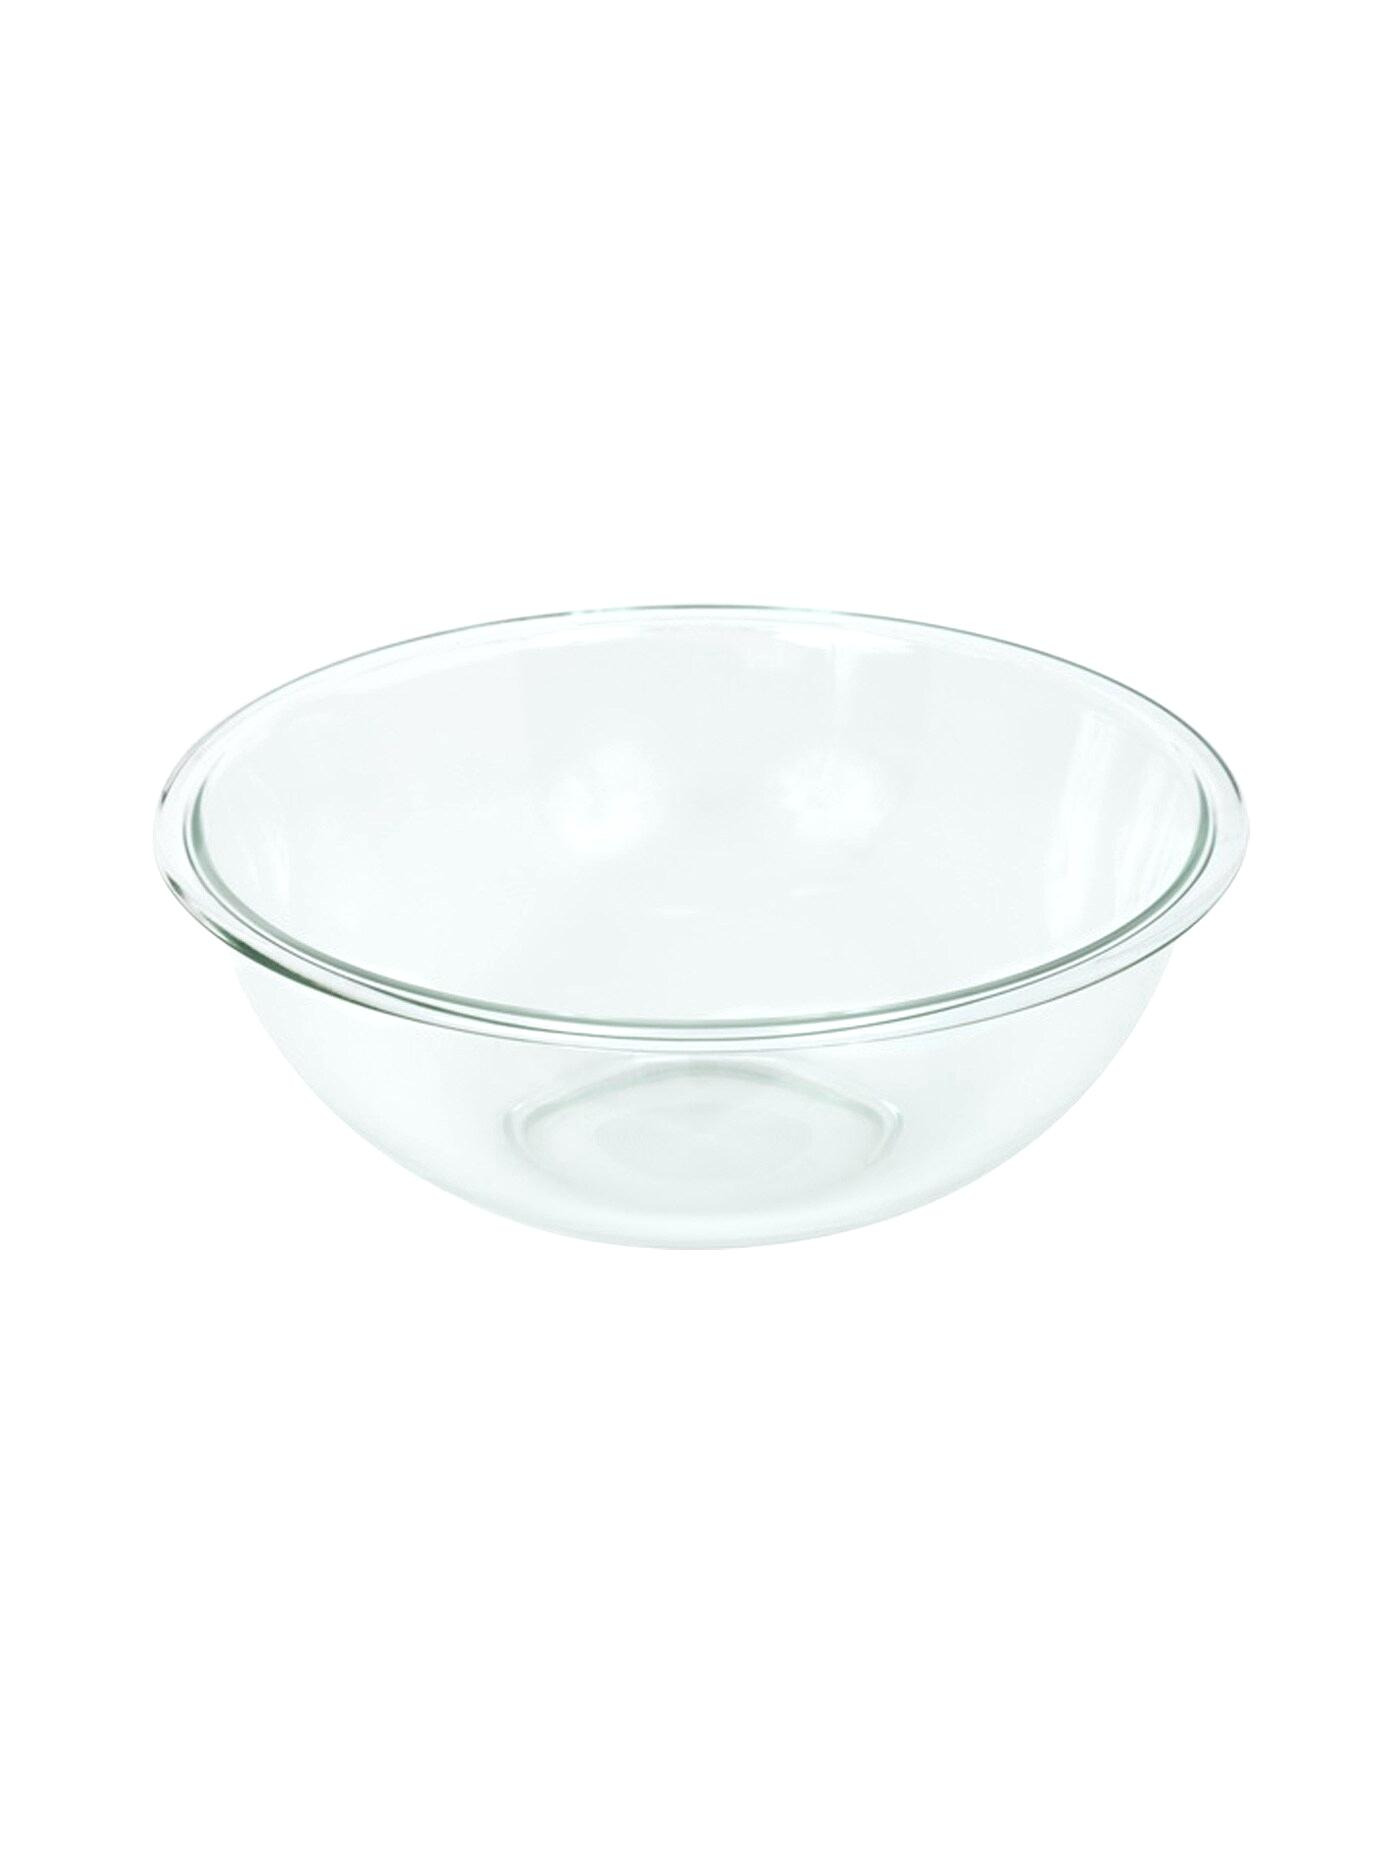 pyrex glass bowls bowl size 2 5 l small with lids central online